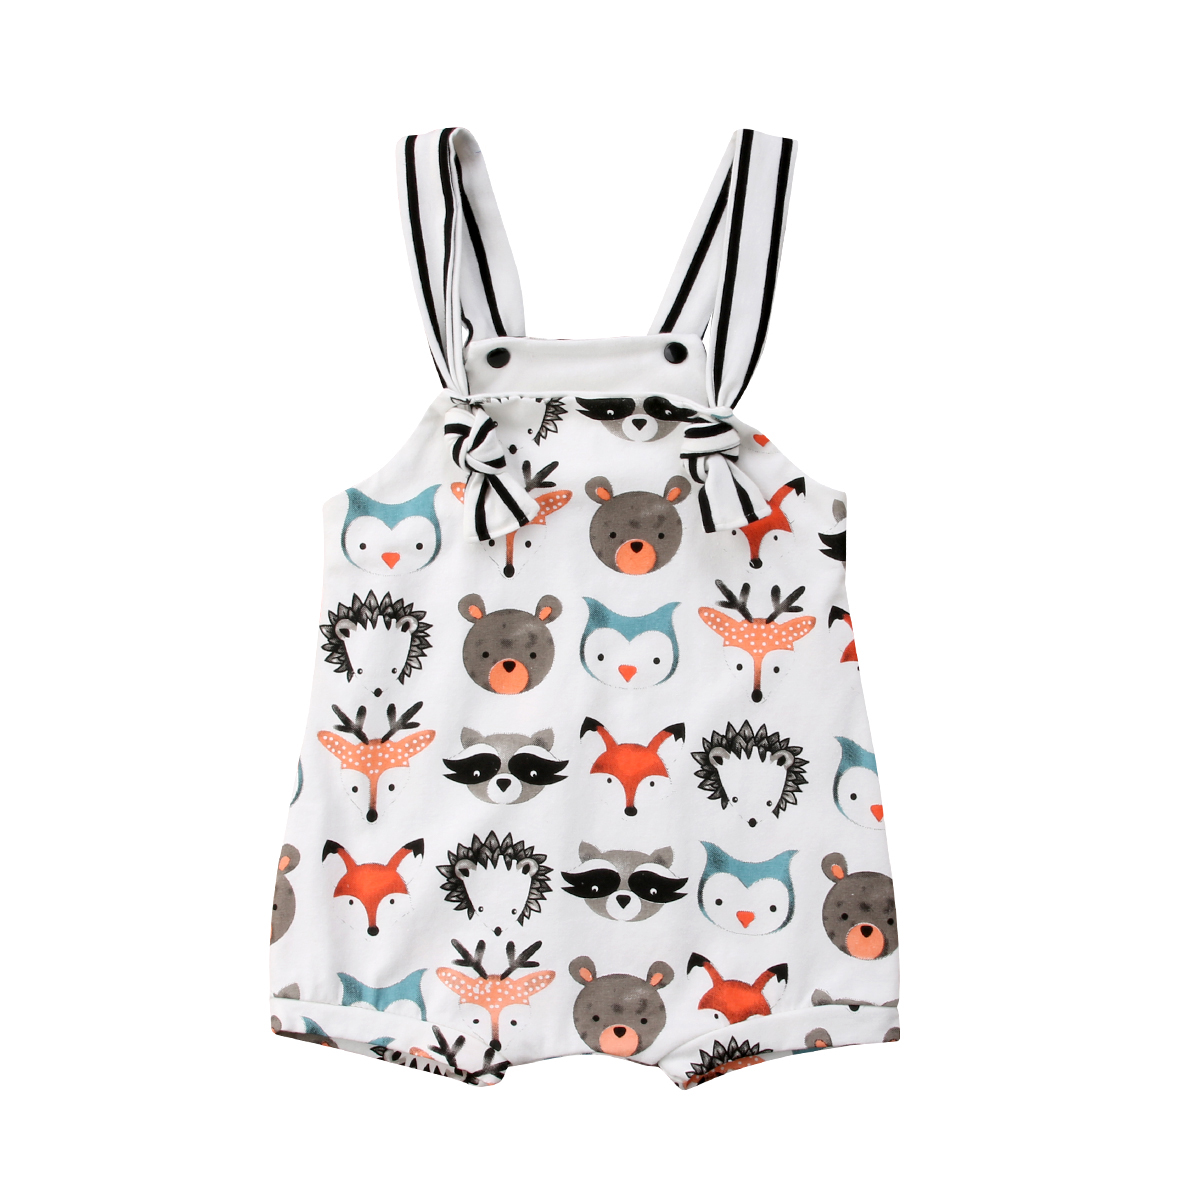 2019 Brand New Summer Toddler Infant Newborn Baby Girls Boys   Romper   0-24M Sleeveless Cartoon Animal Jumpsuits Sunsuit Playsuit